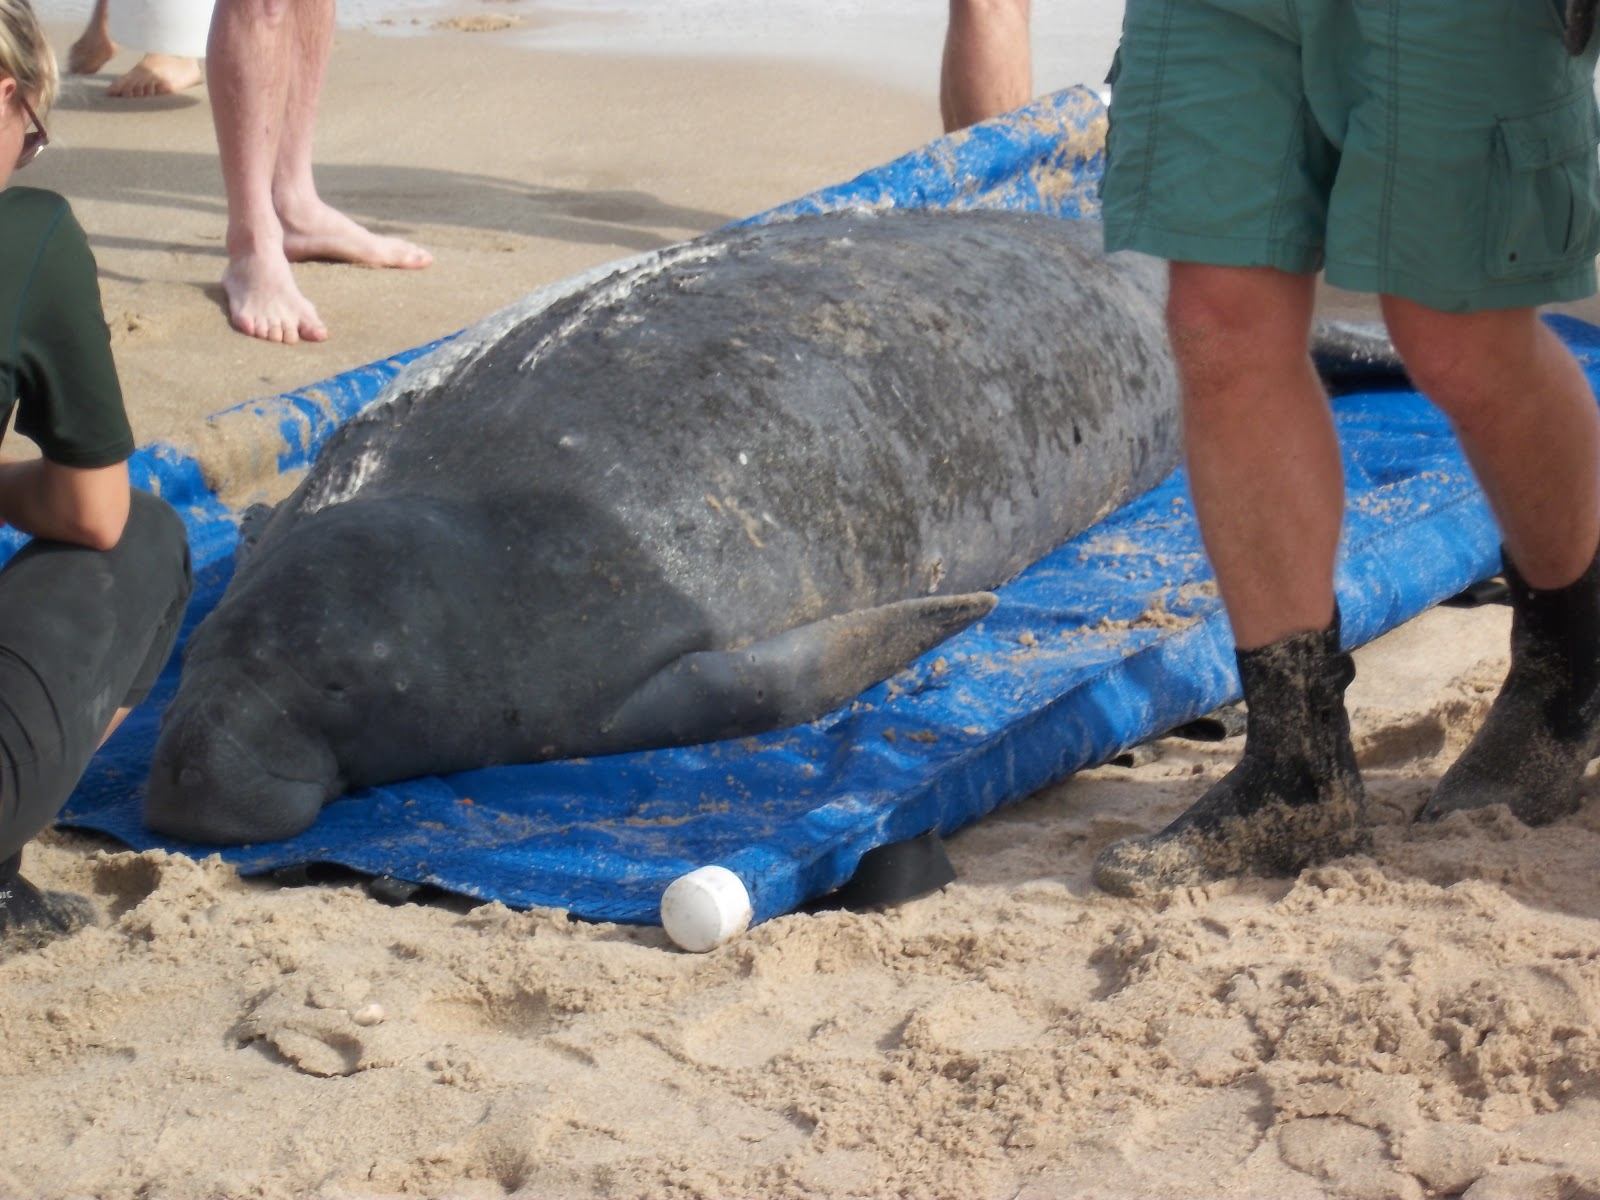 ty and ida on the road the treasure coast it took a team of florida dnr whale rescue manatee rescue and u s fish wildlife to drag the animal up the beach out of the rising tide plus keeping